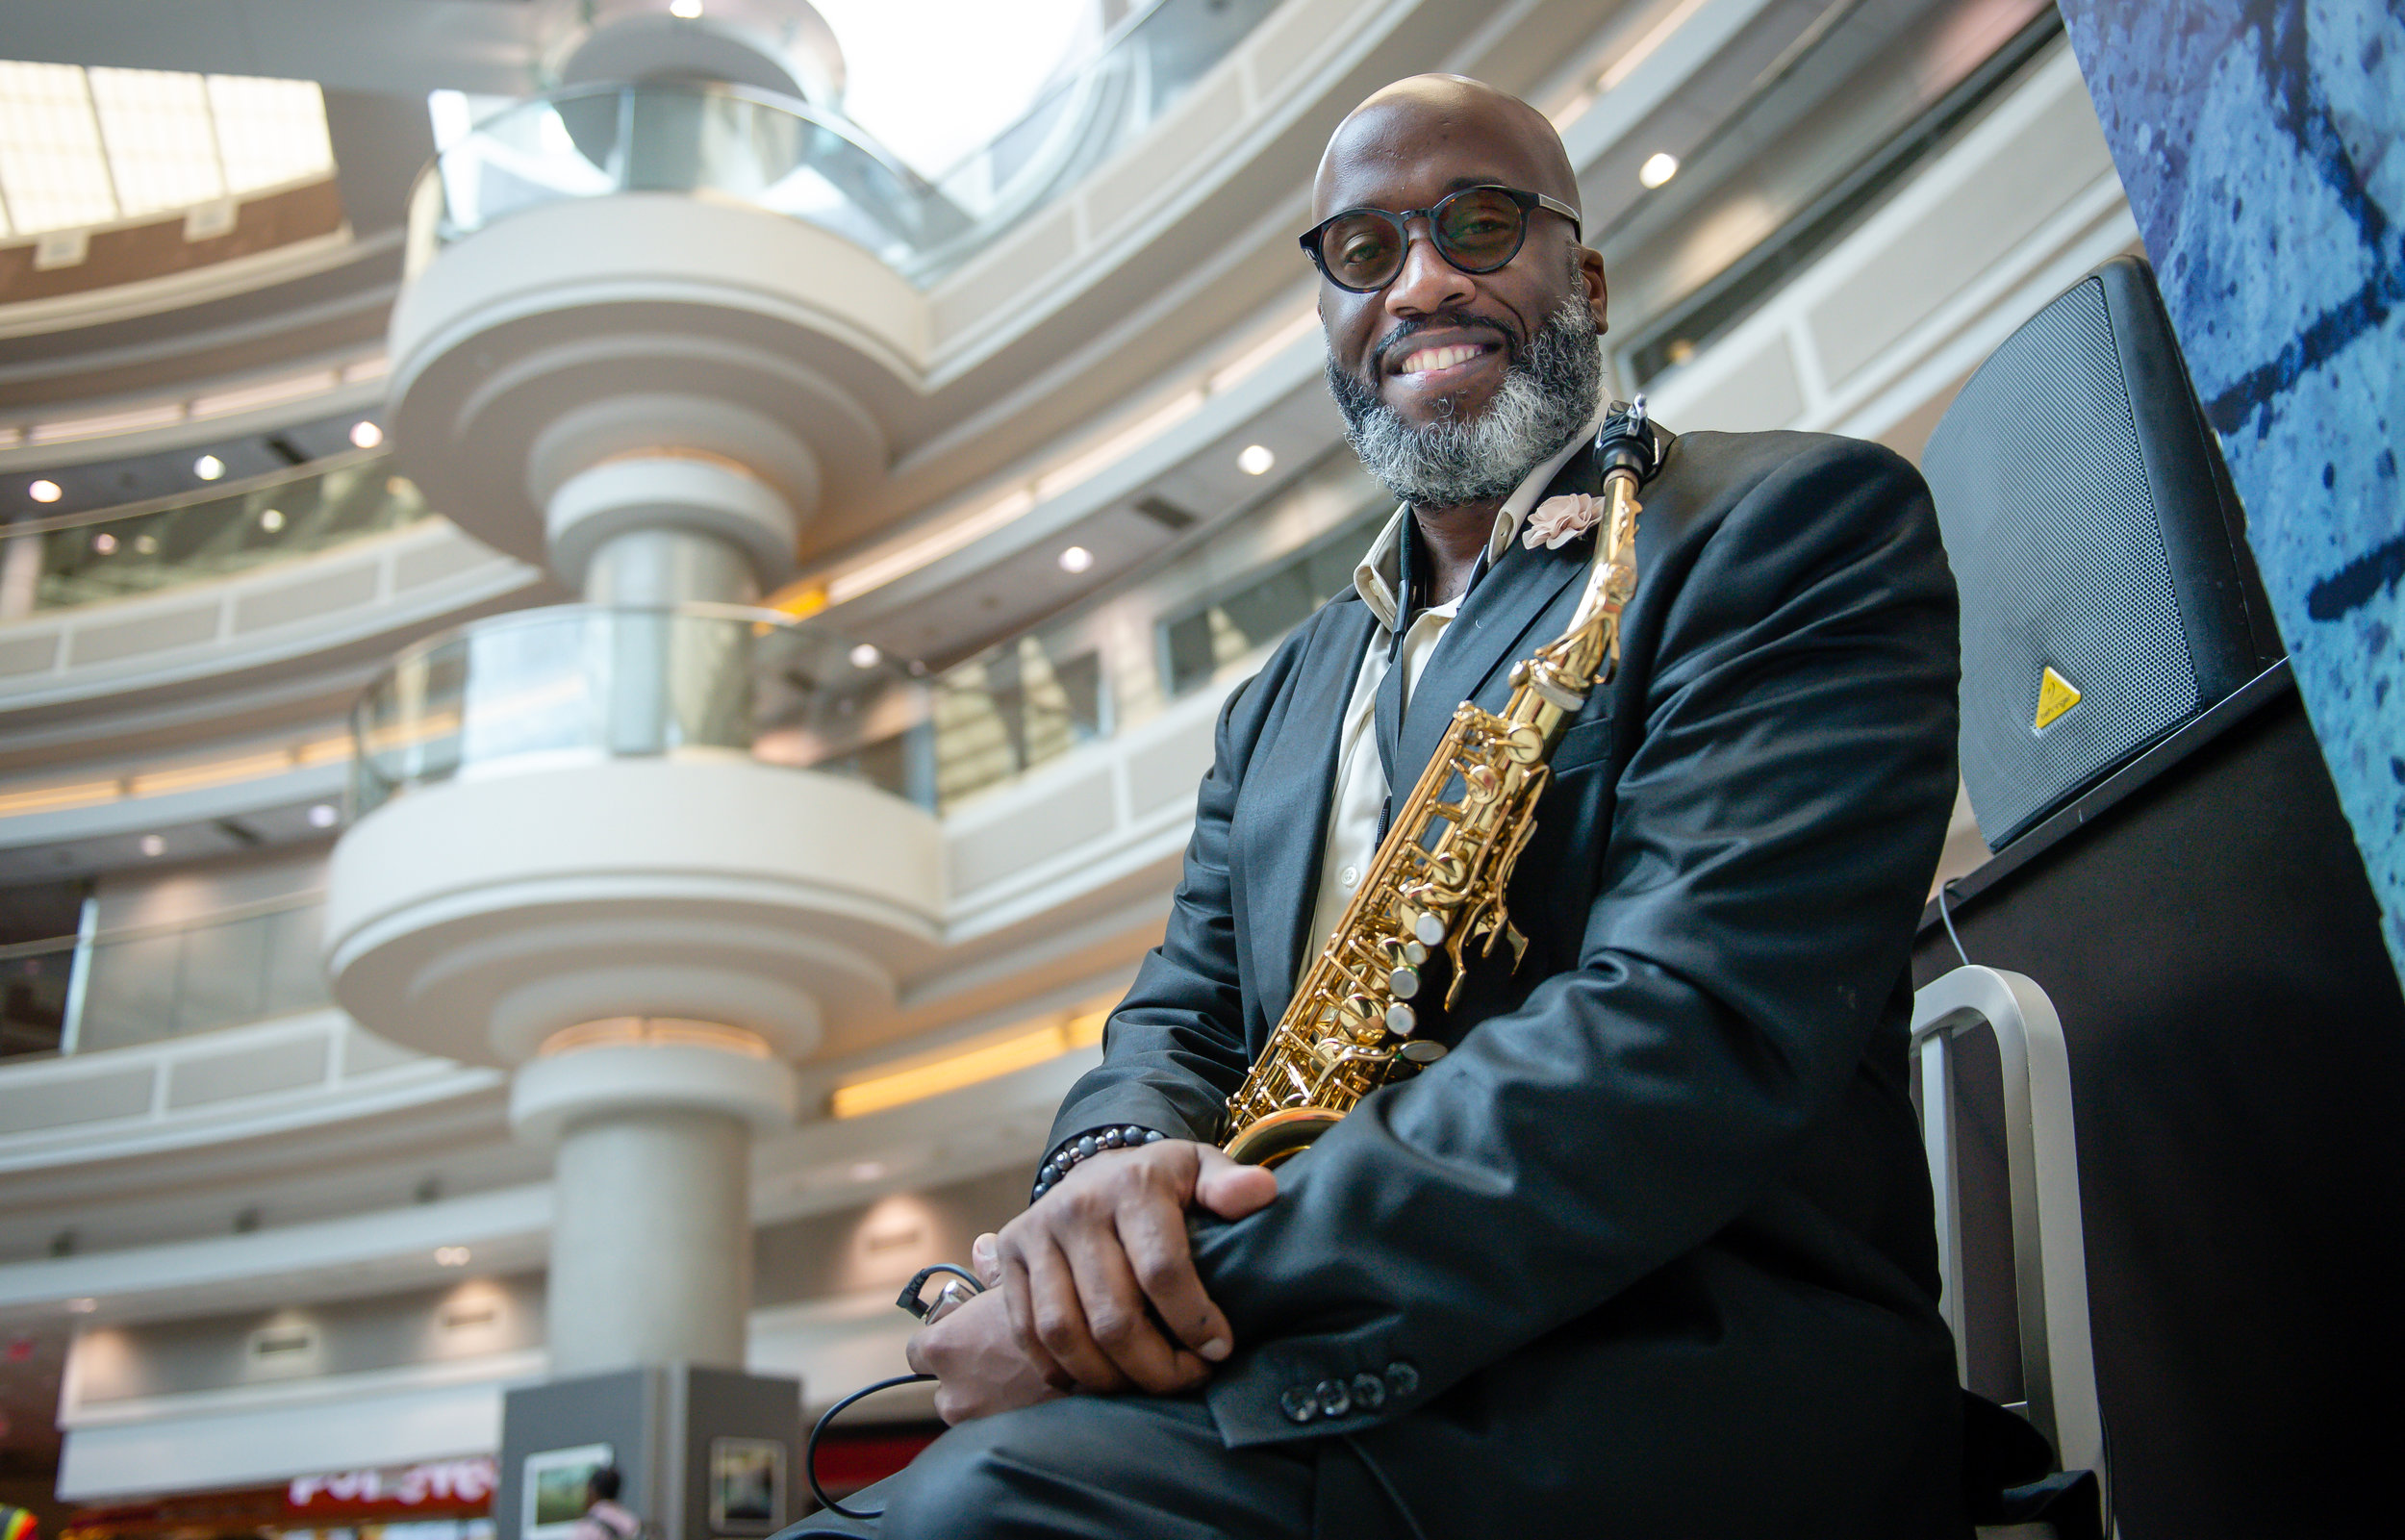 Musician Ron James poses for a photo with his saxophone during a break from performing in the atrium at Hartsfield Jackson Atlanta International Airport Friday, 28 Sept. 2018.